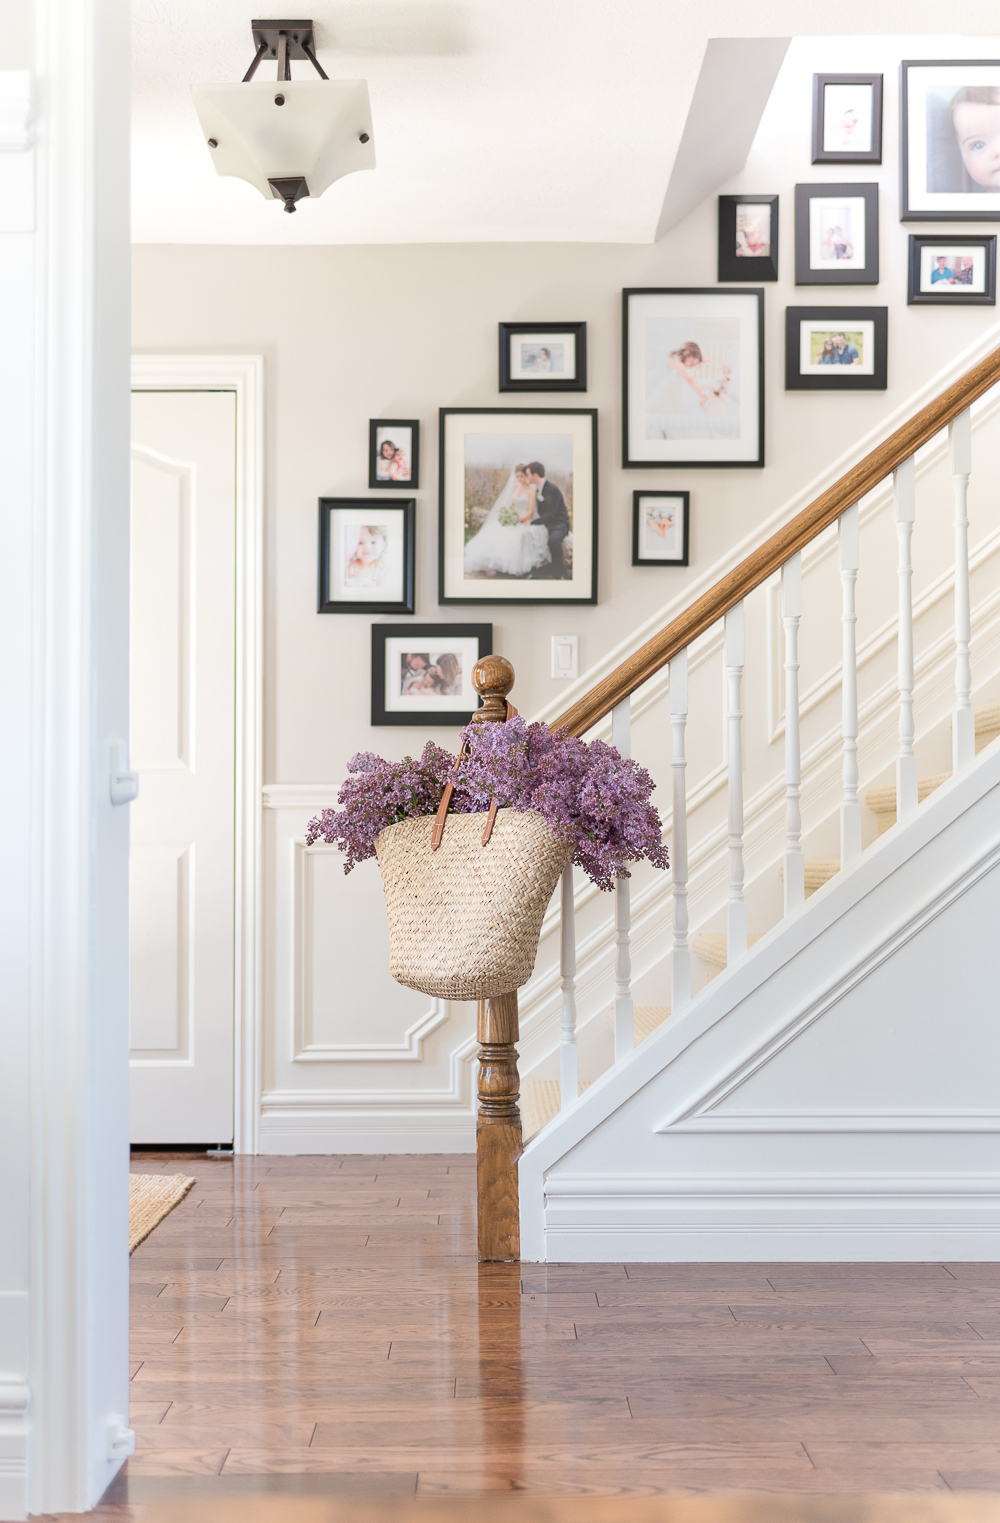 Staircase gallery wall with modern black frames